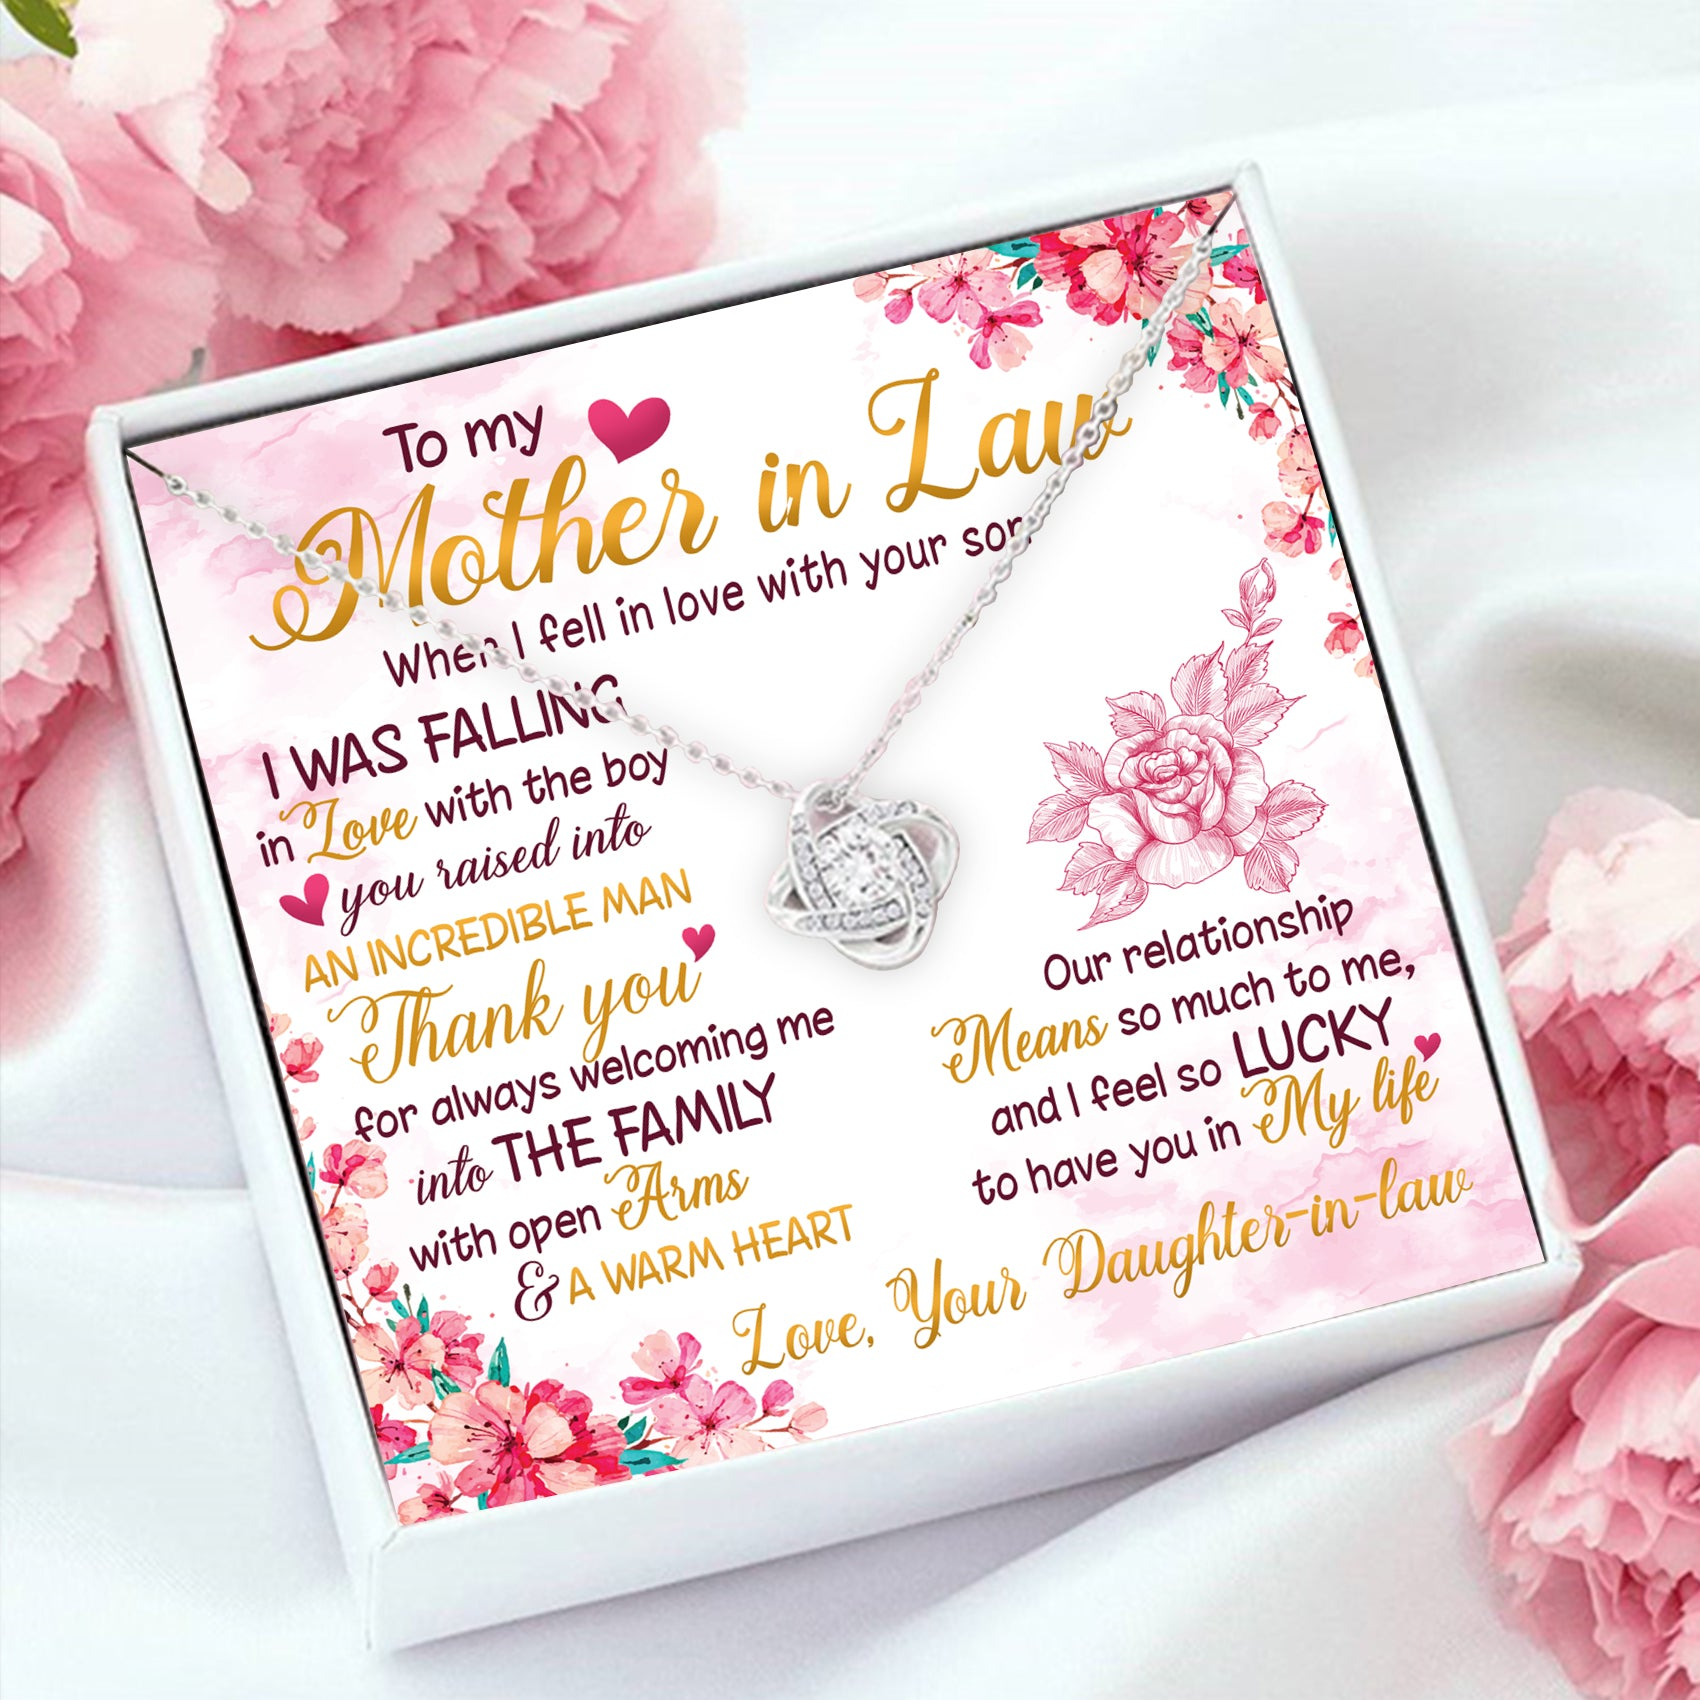 To Mother in law - Thank you for welcoming me - Love knot necklace - Sentimental Gifts For Mother-in-law